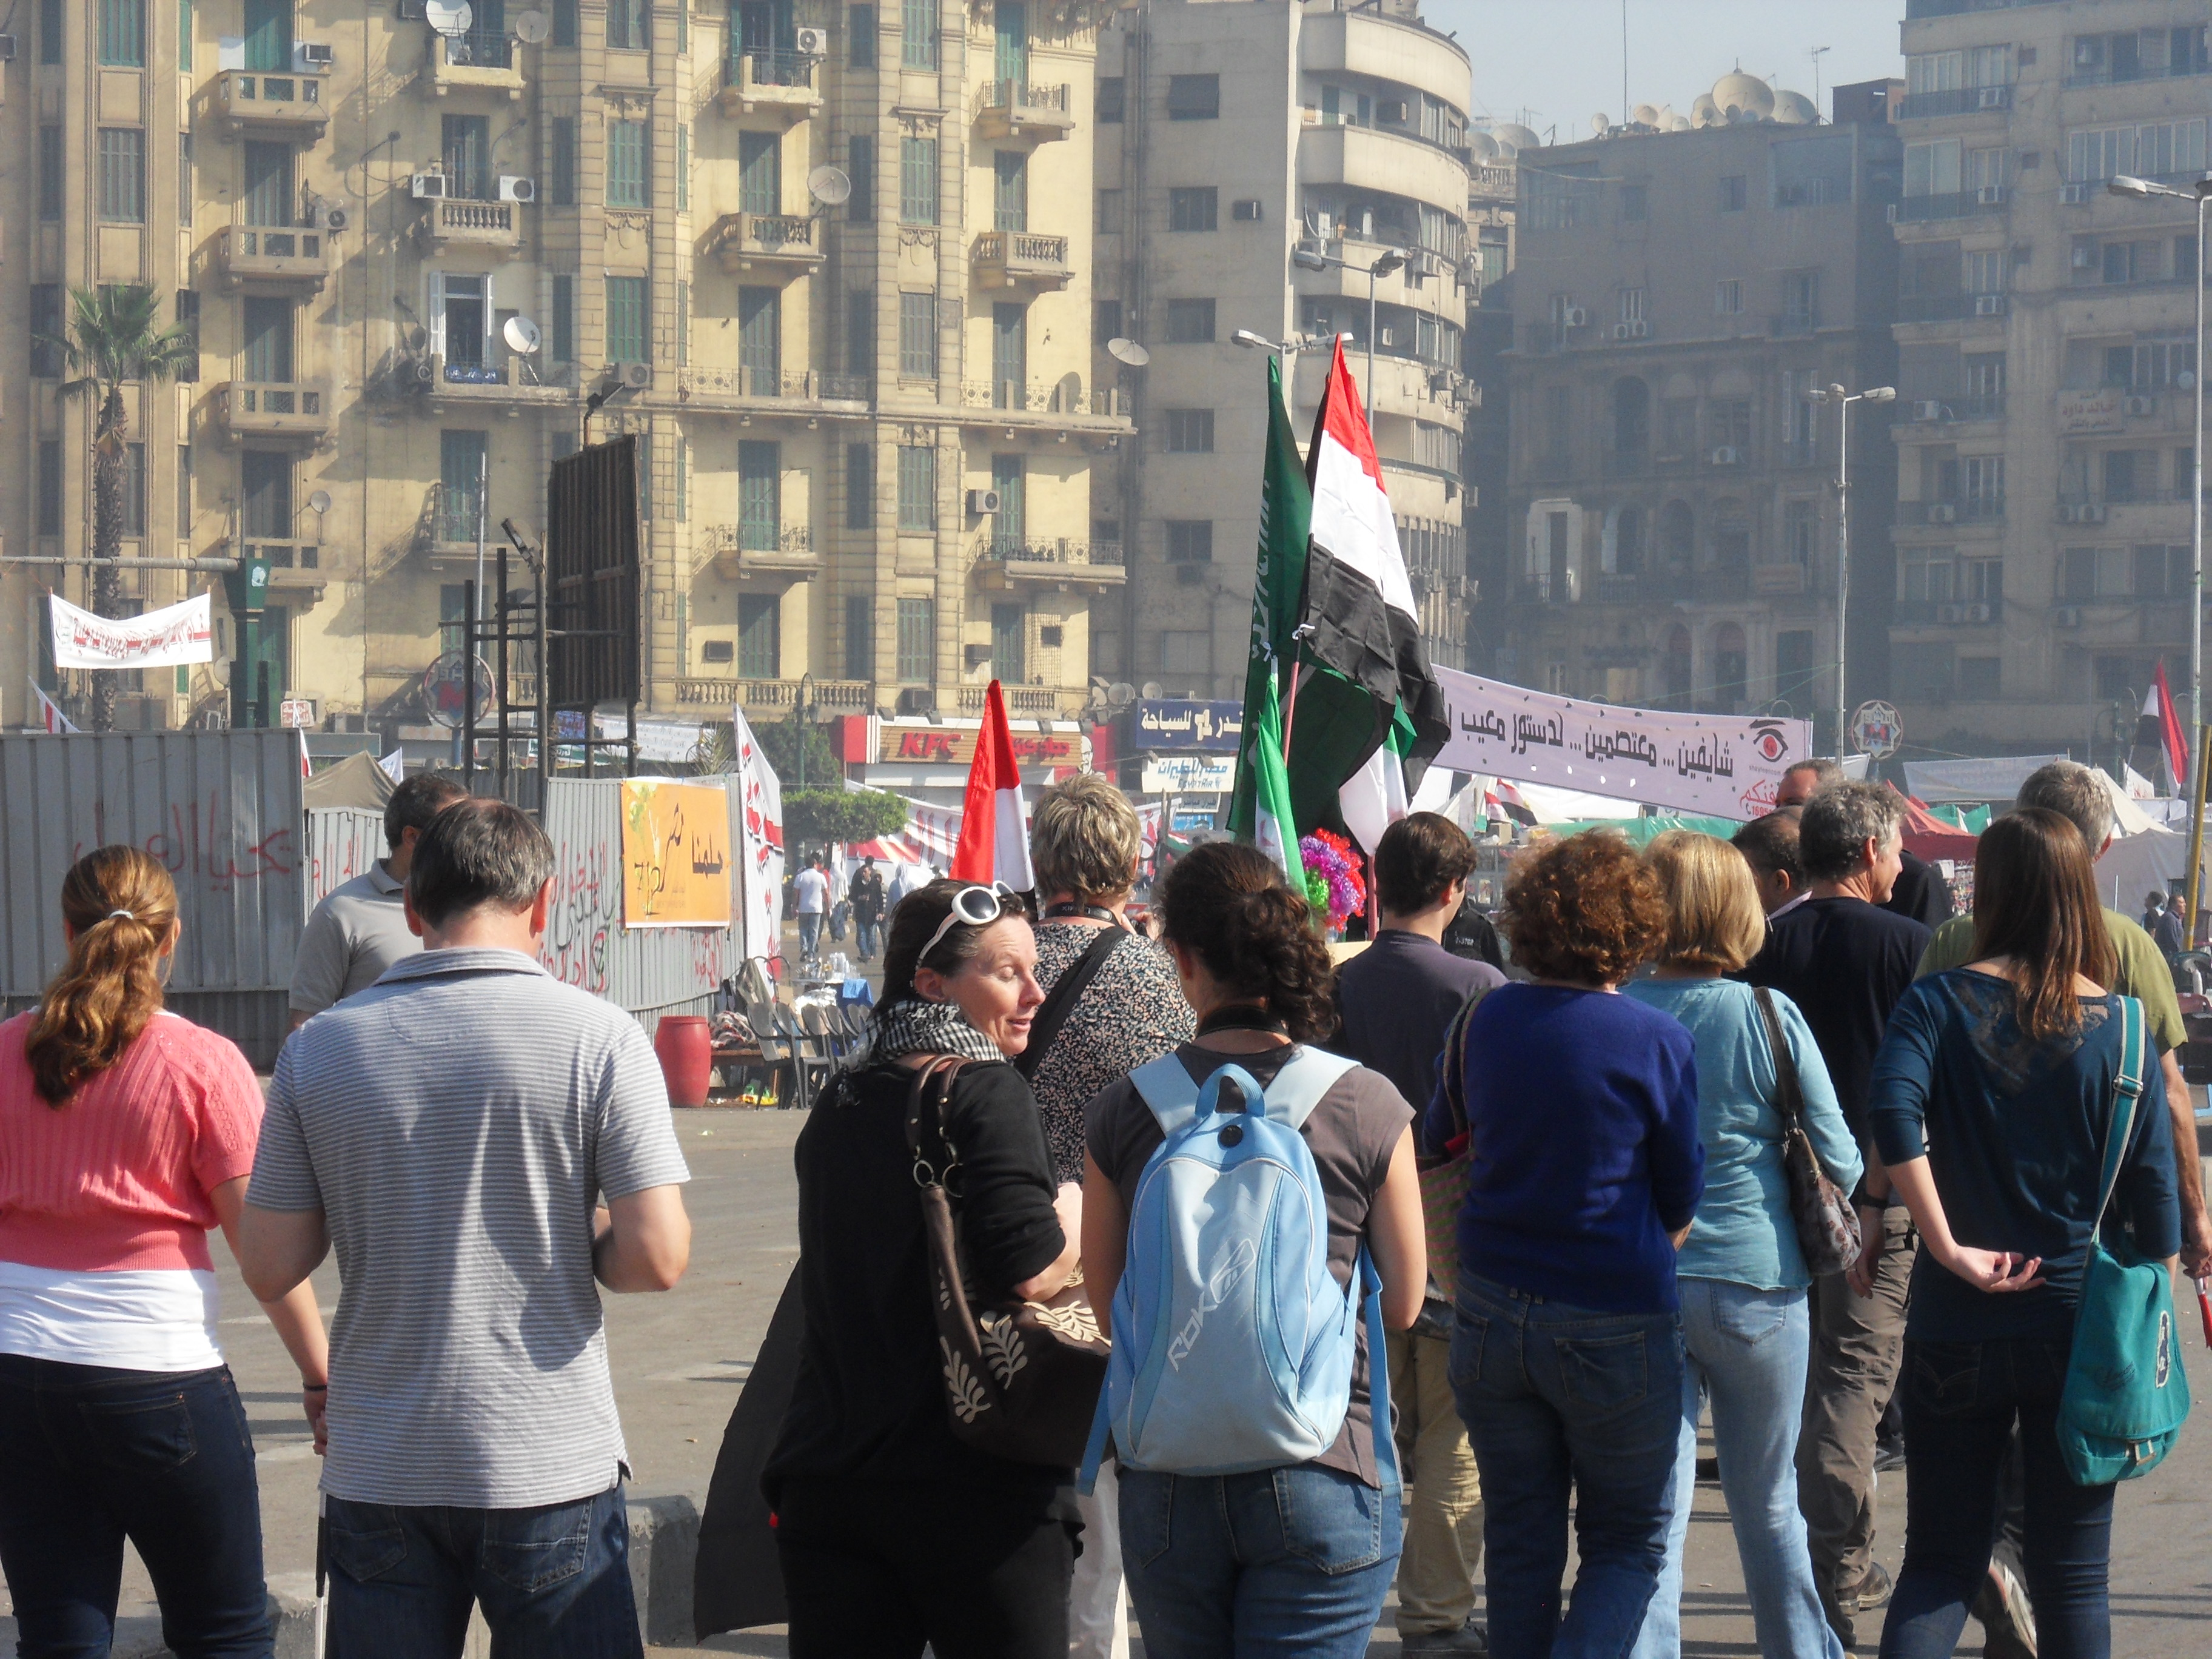 One of the tour groups entering Tahrir Square